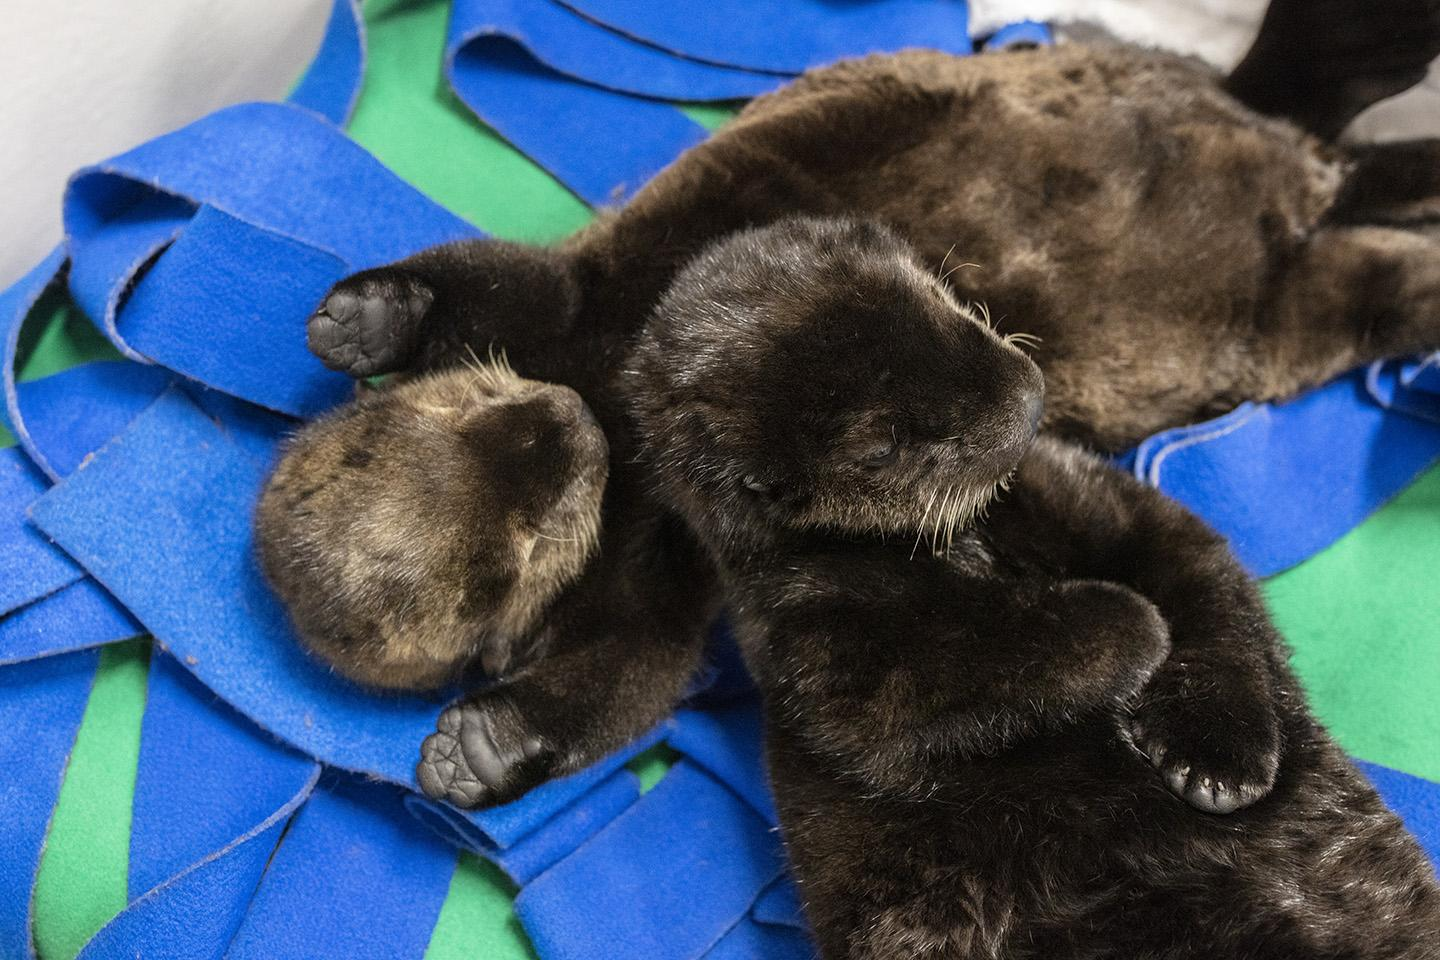 Shedd's two sea otter pups often sleep next to each other. (Brenna Hernandez / Shedd Aquarium)